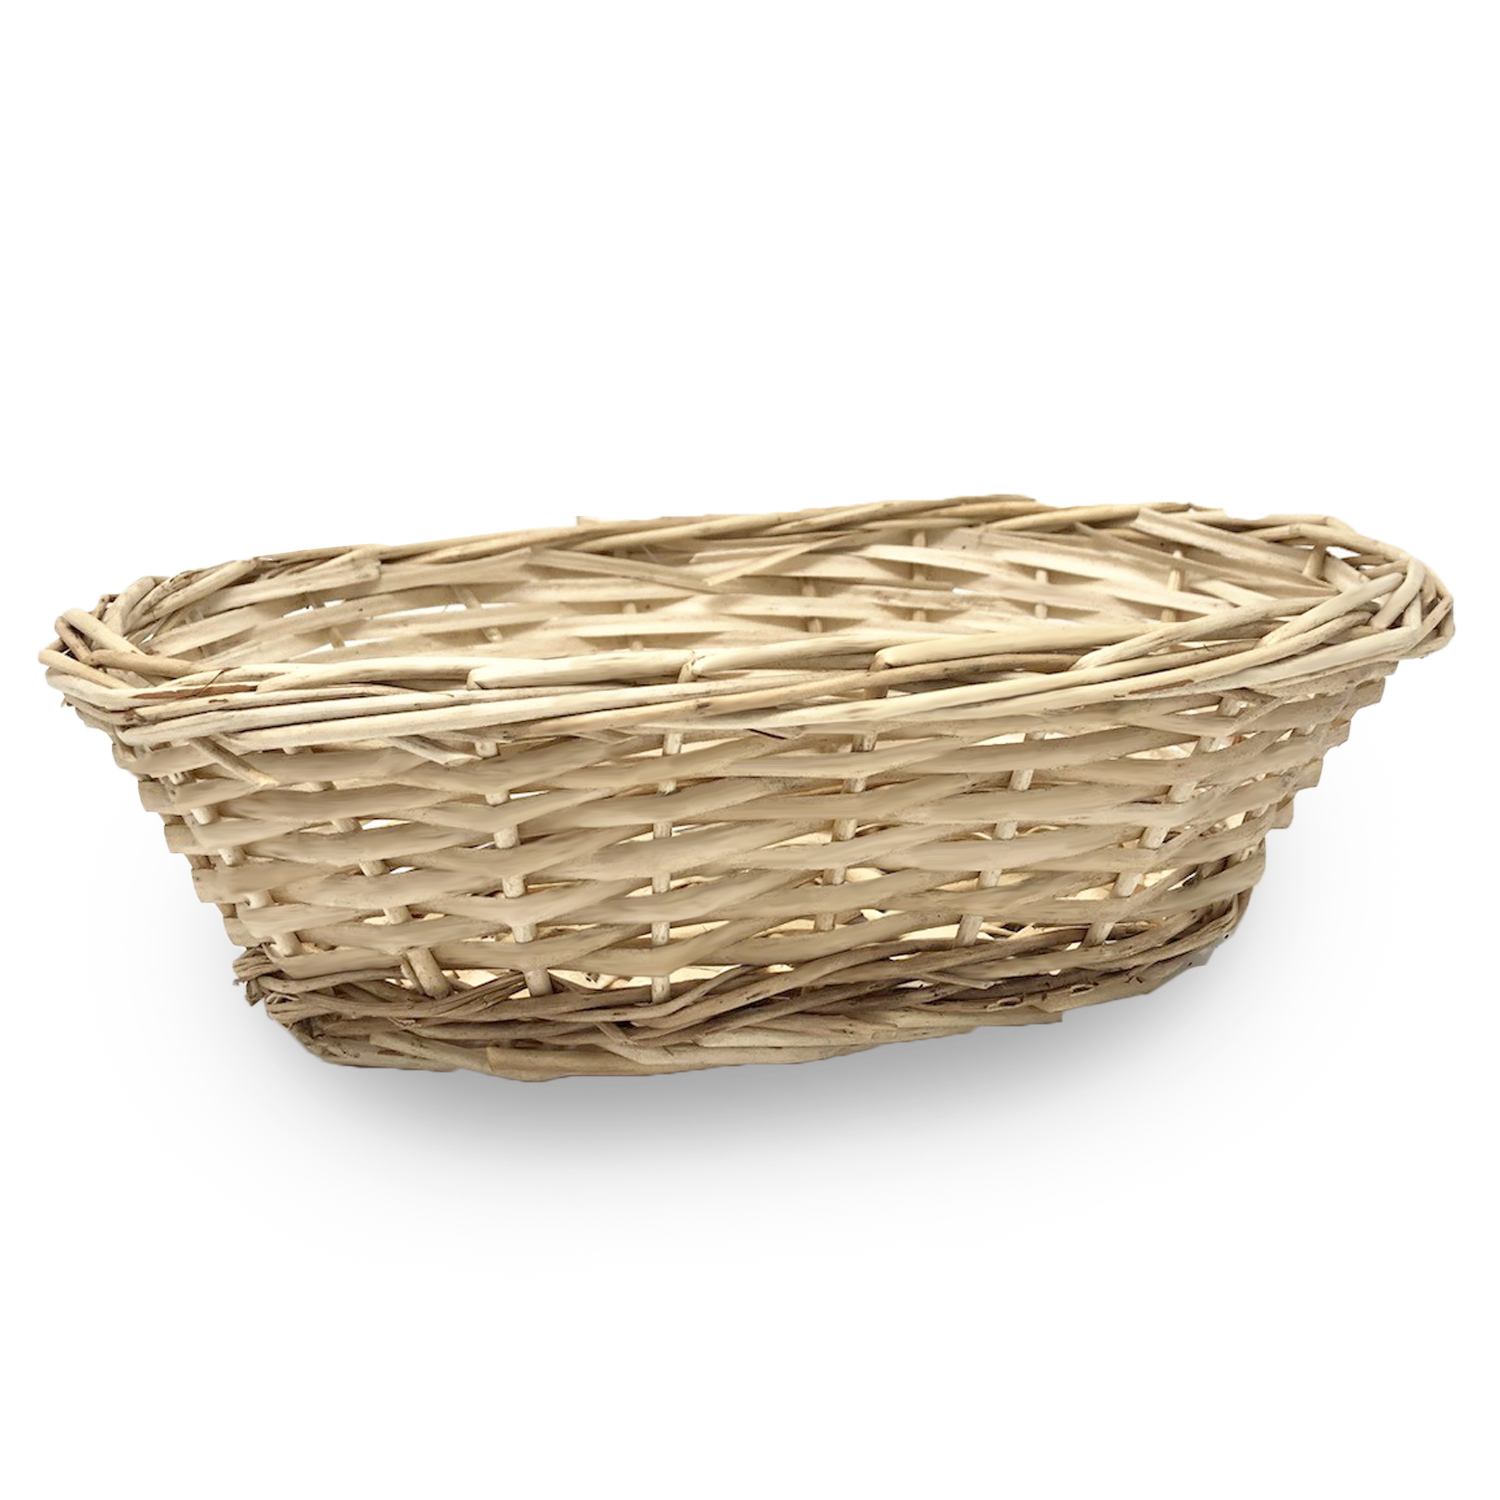 Natural Willow Oblong Tray Basket 10in